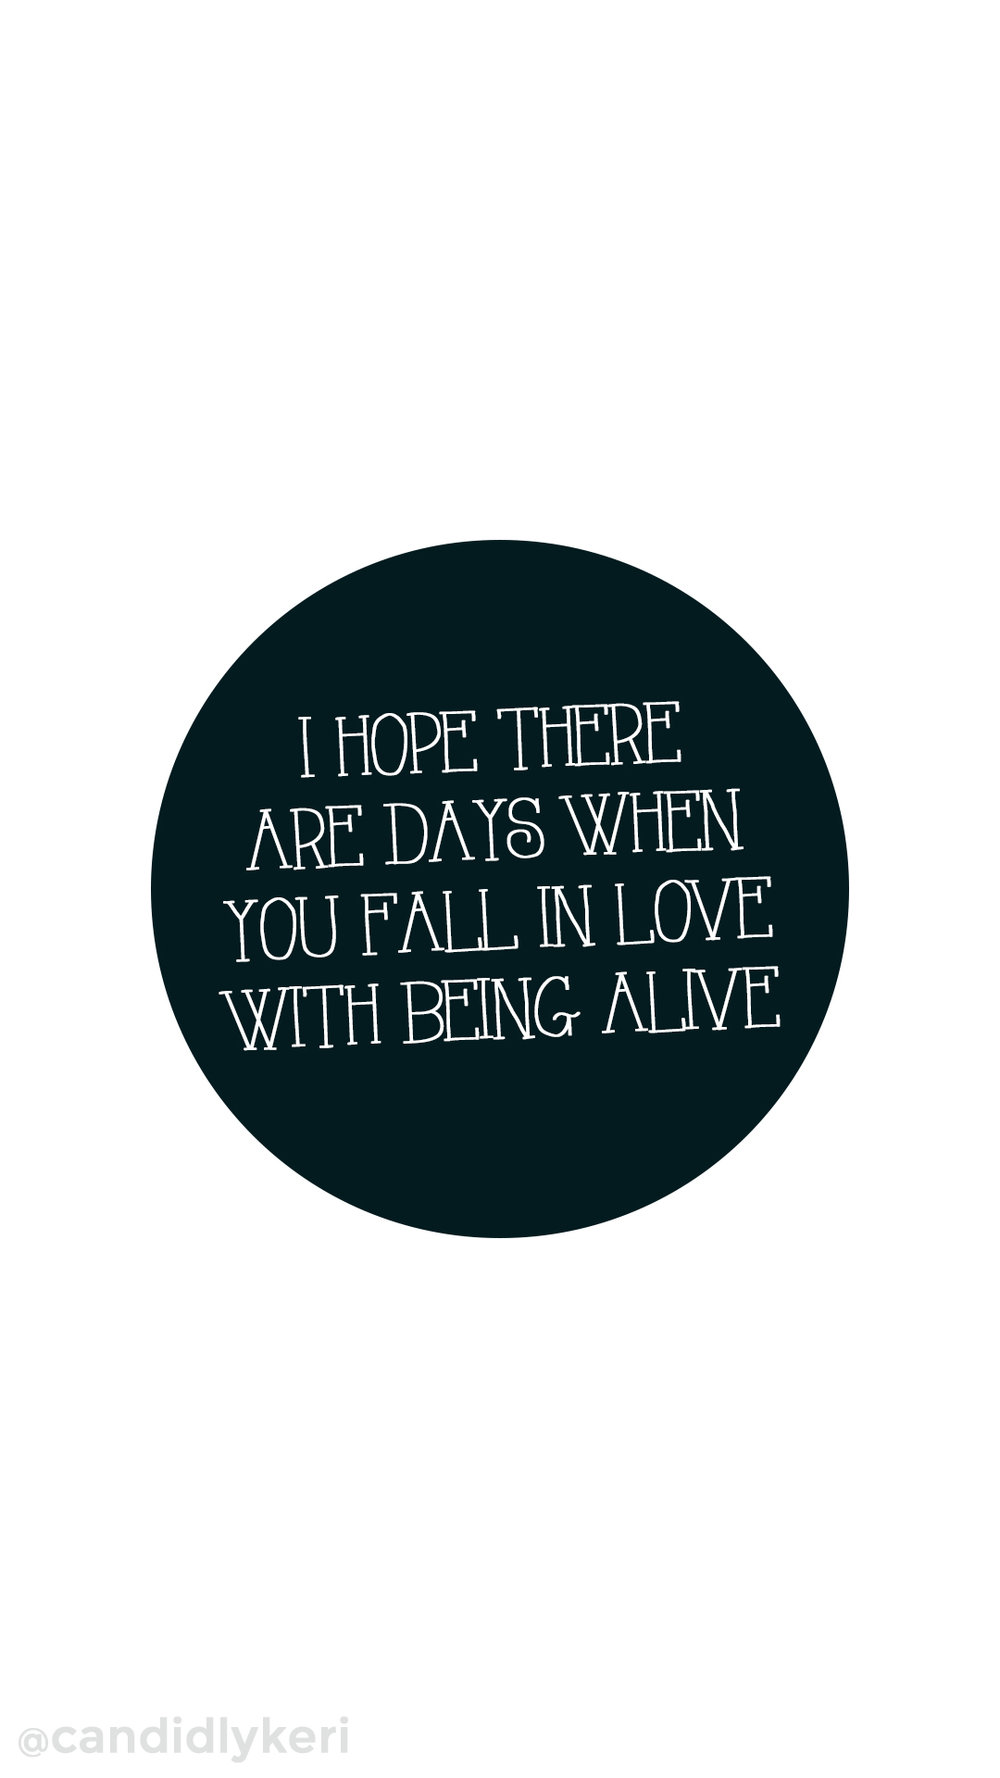 I hope there are days when you fall in love with being alive